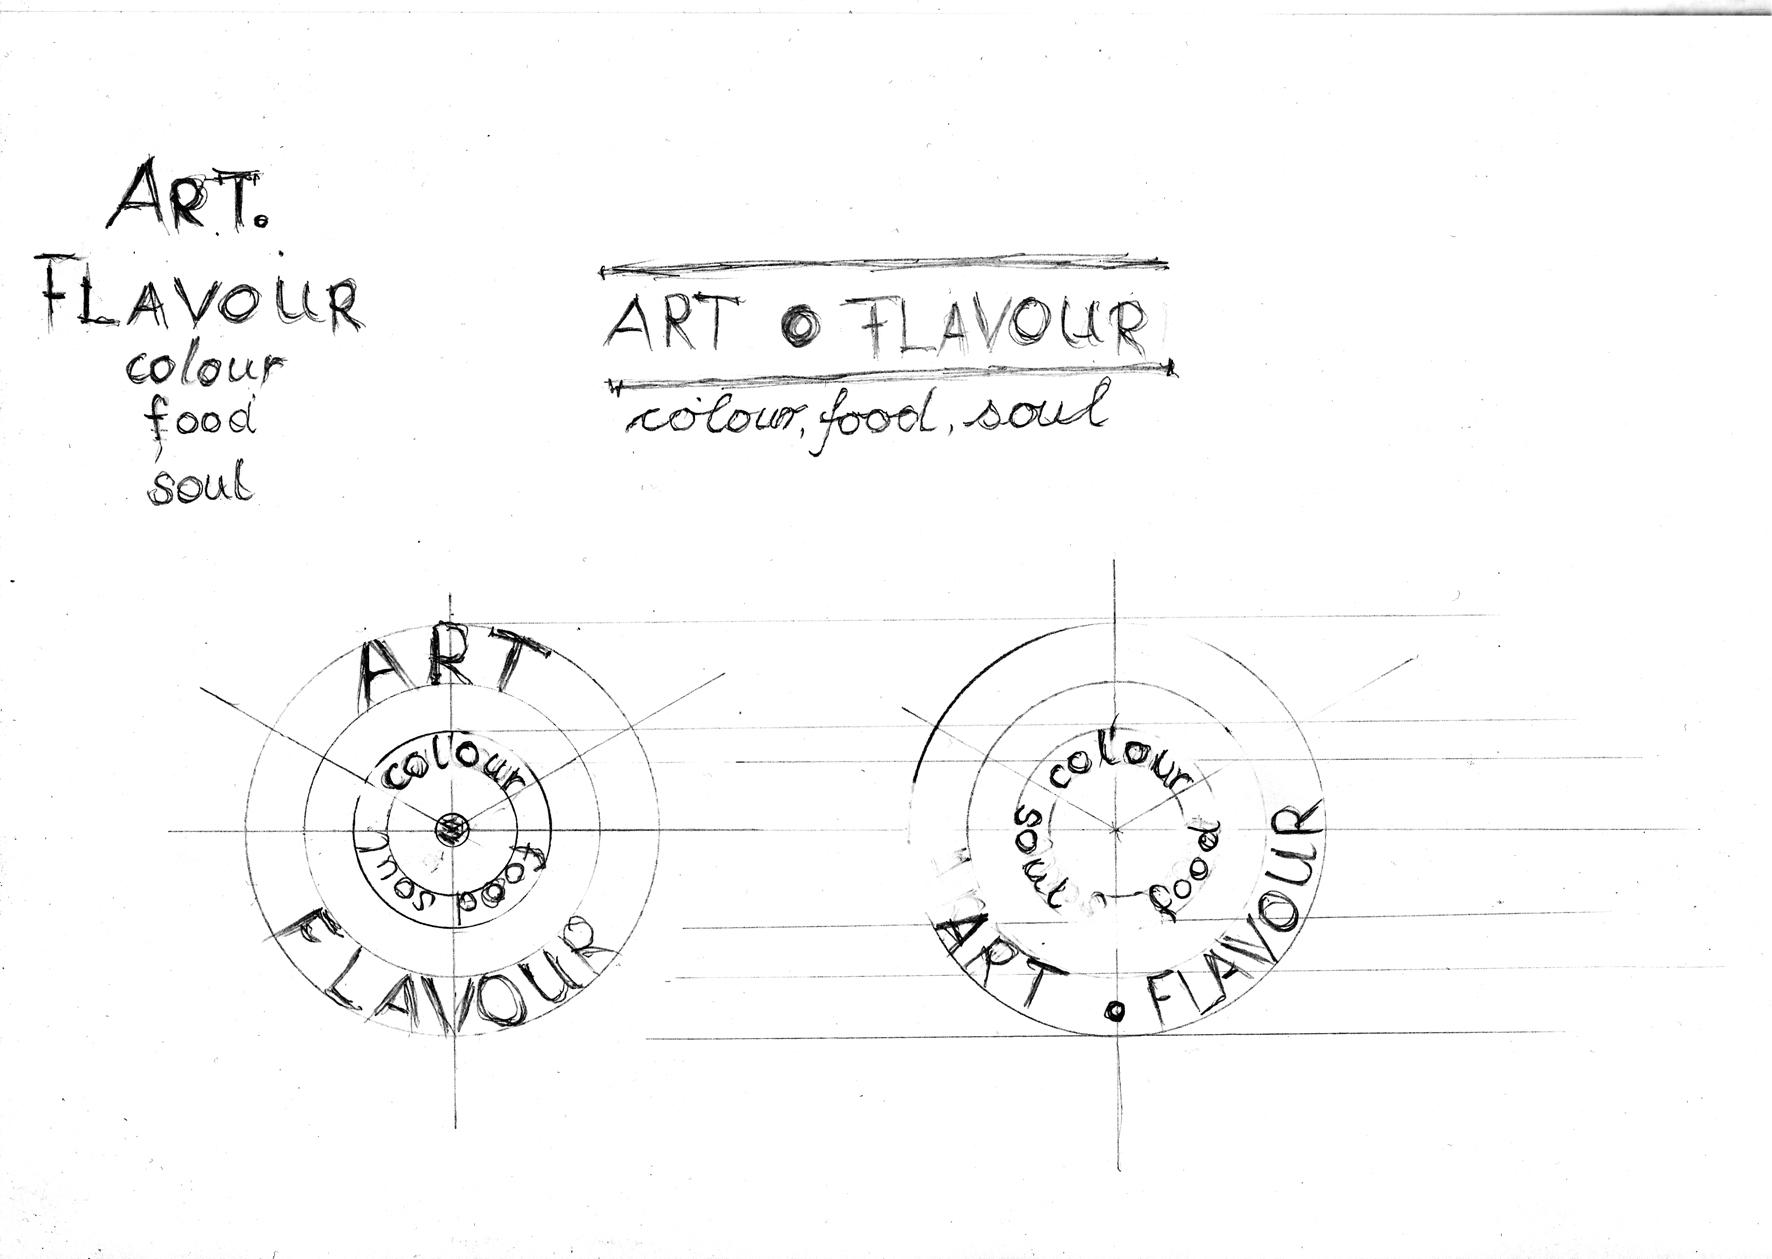 Creating a logo for my company ART.FLAVOUR/ next step - image 2 - student project